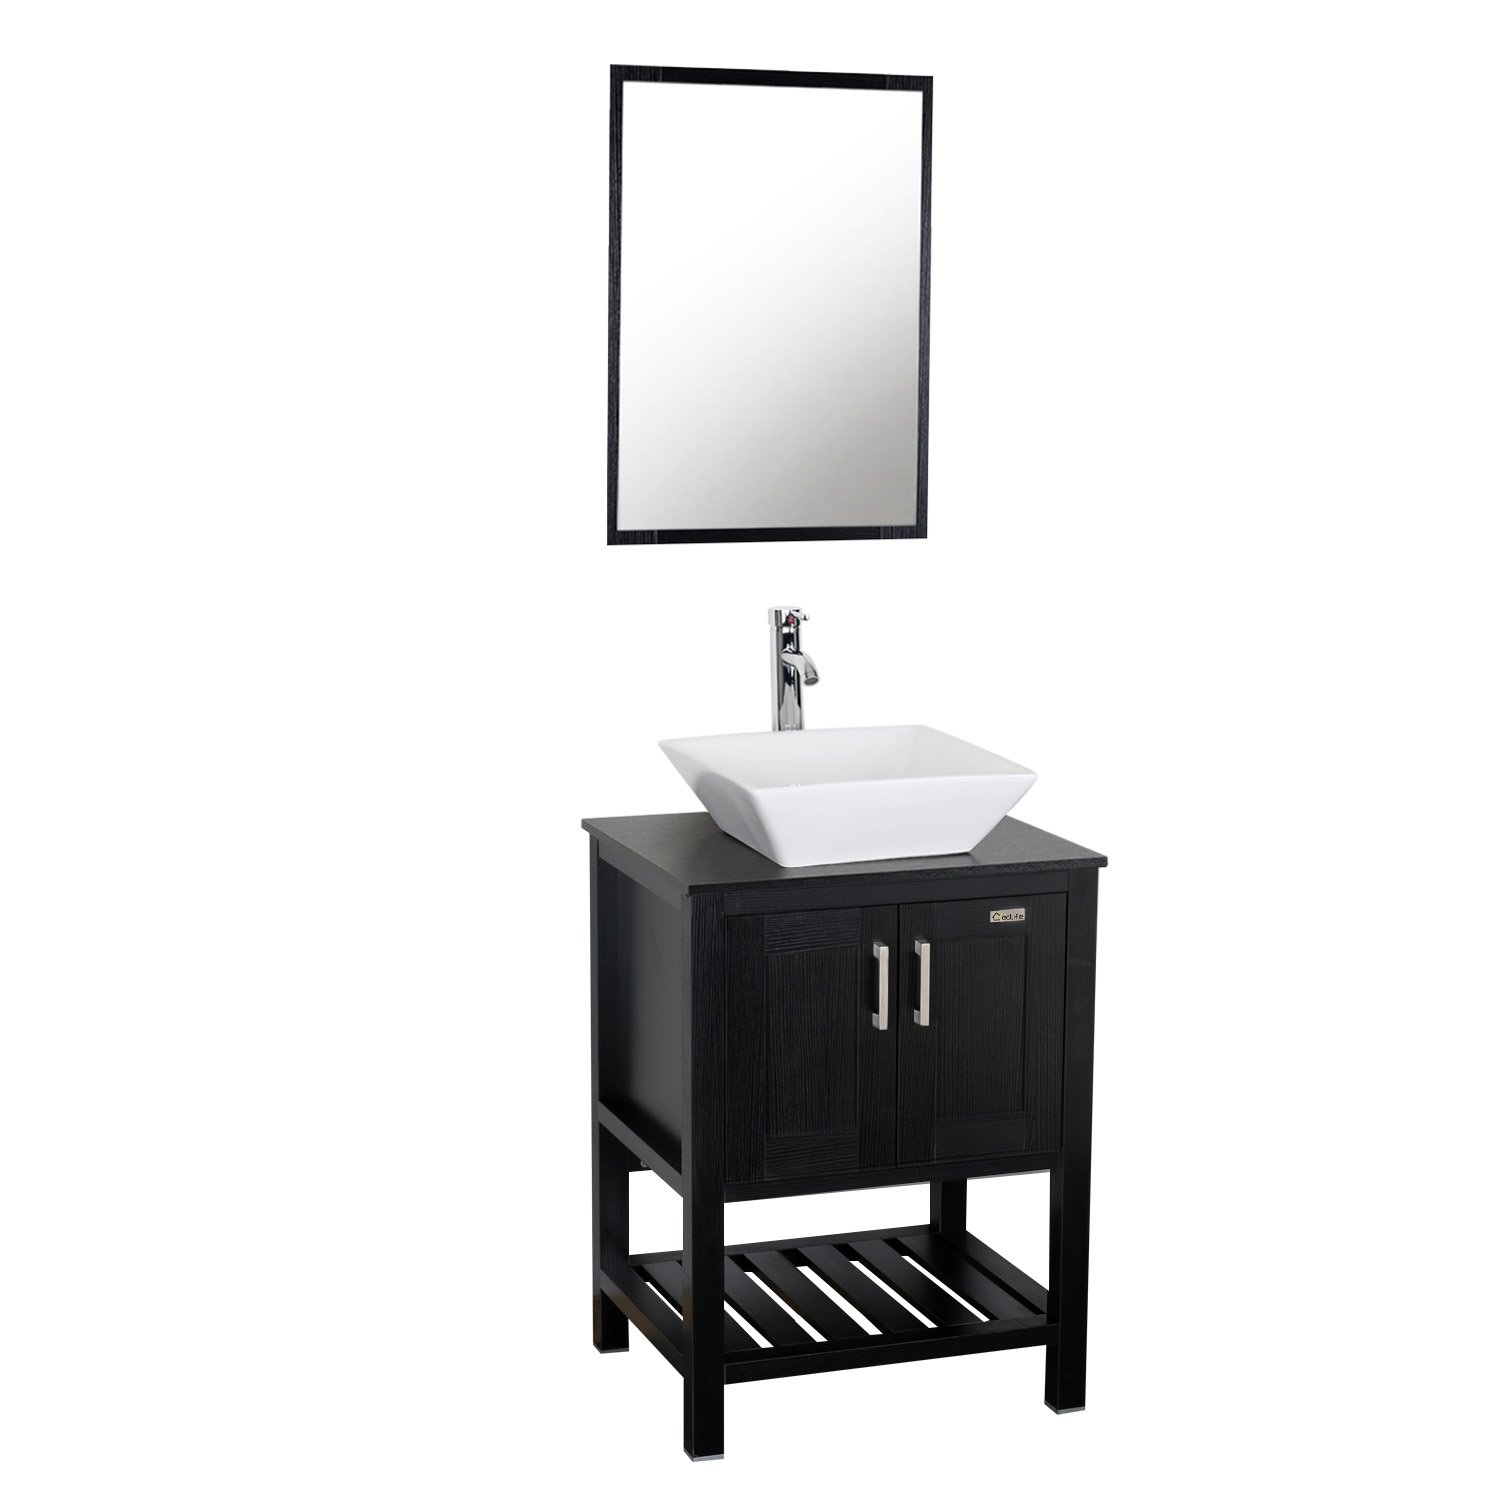 . Eclife 24 inch Modern Bathroom Vanity Units Cabinet And Sink Stand Pedestal  with White Square Ceramic Vessel Sink with Chrome Bathroom Solid Brass